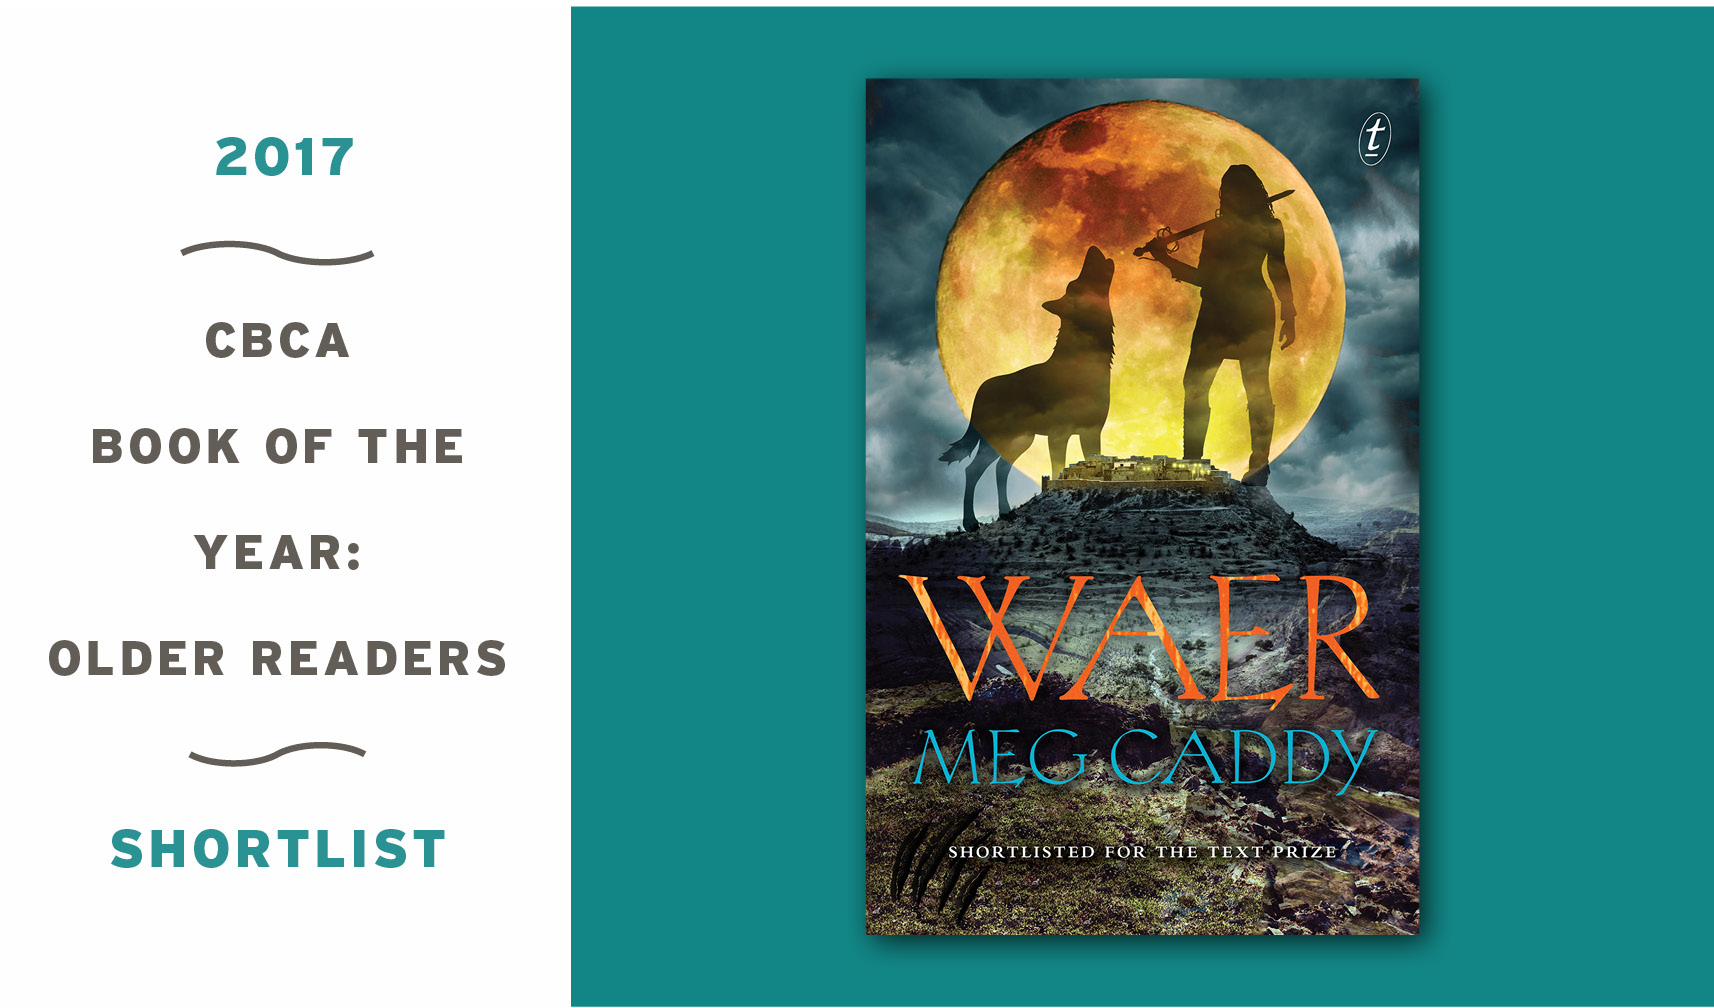 Waer by Meg Caddy shortlisted for 2017 CBCA Book of the Year for Older Readers Award